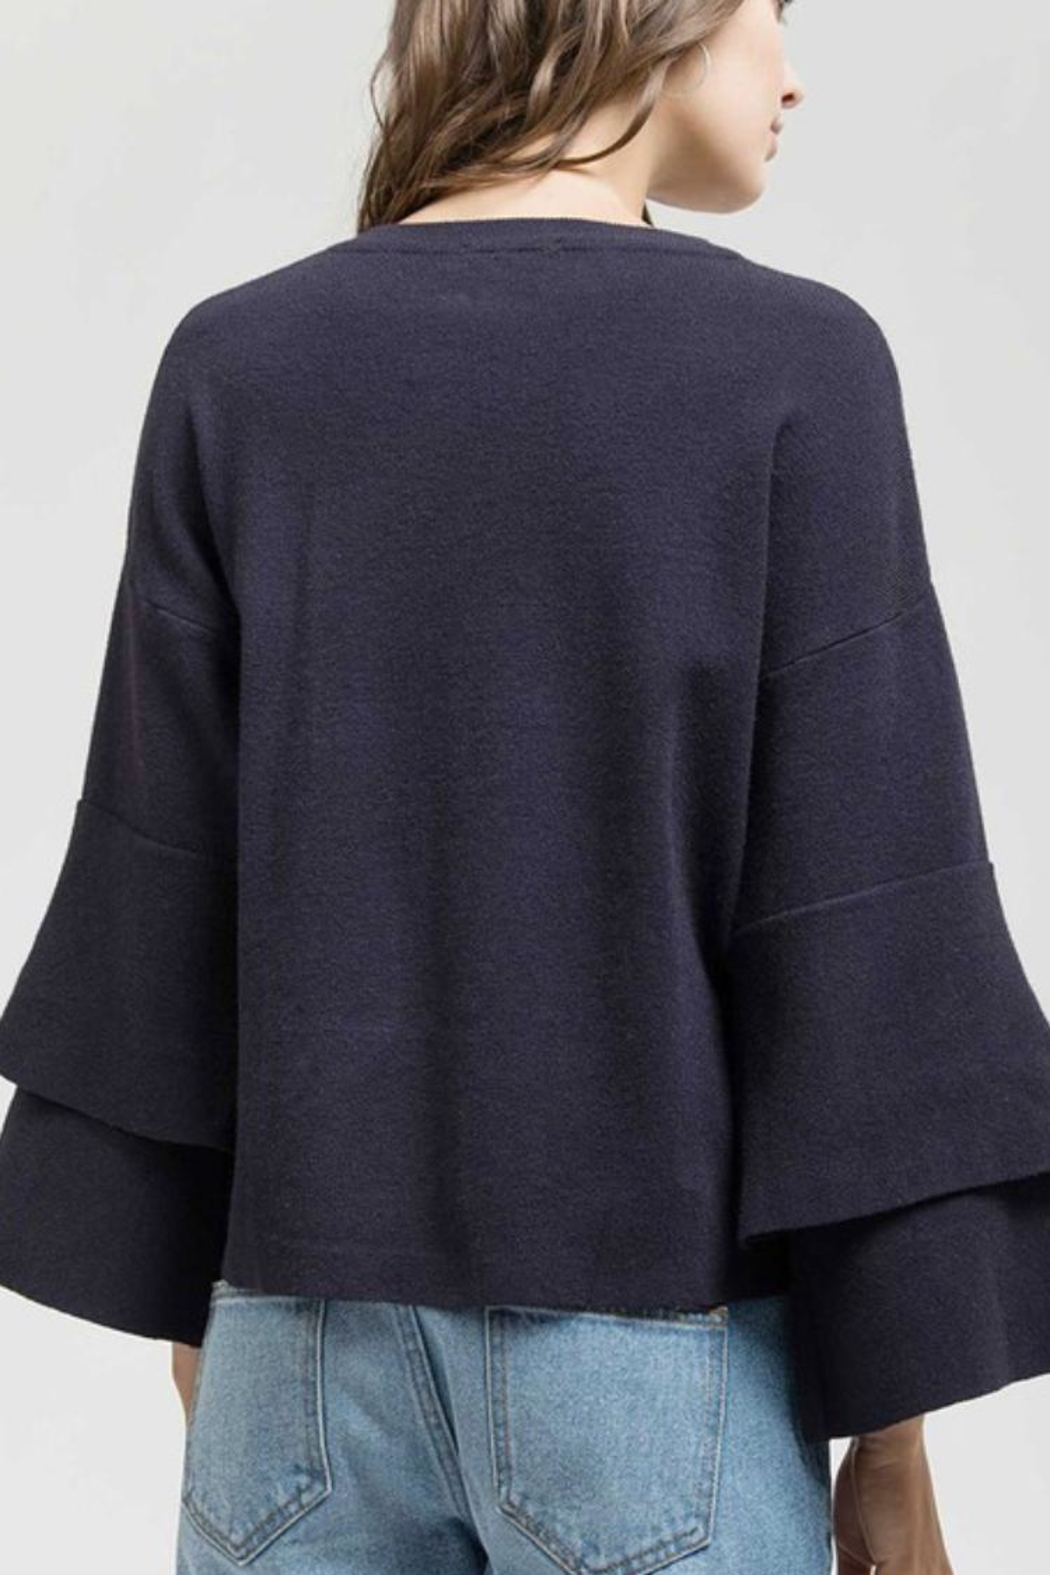 Blu Pepper Ruffle Sweater Top - Side Cropped Image